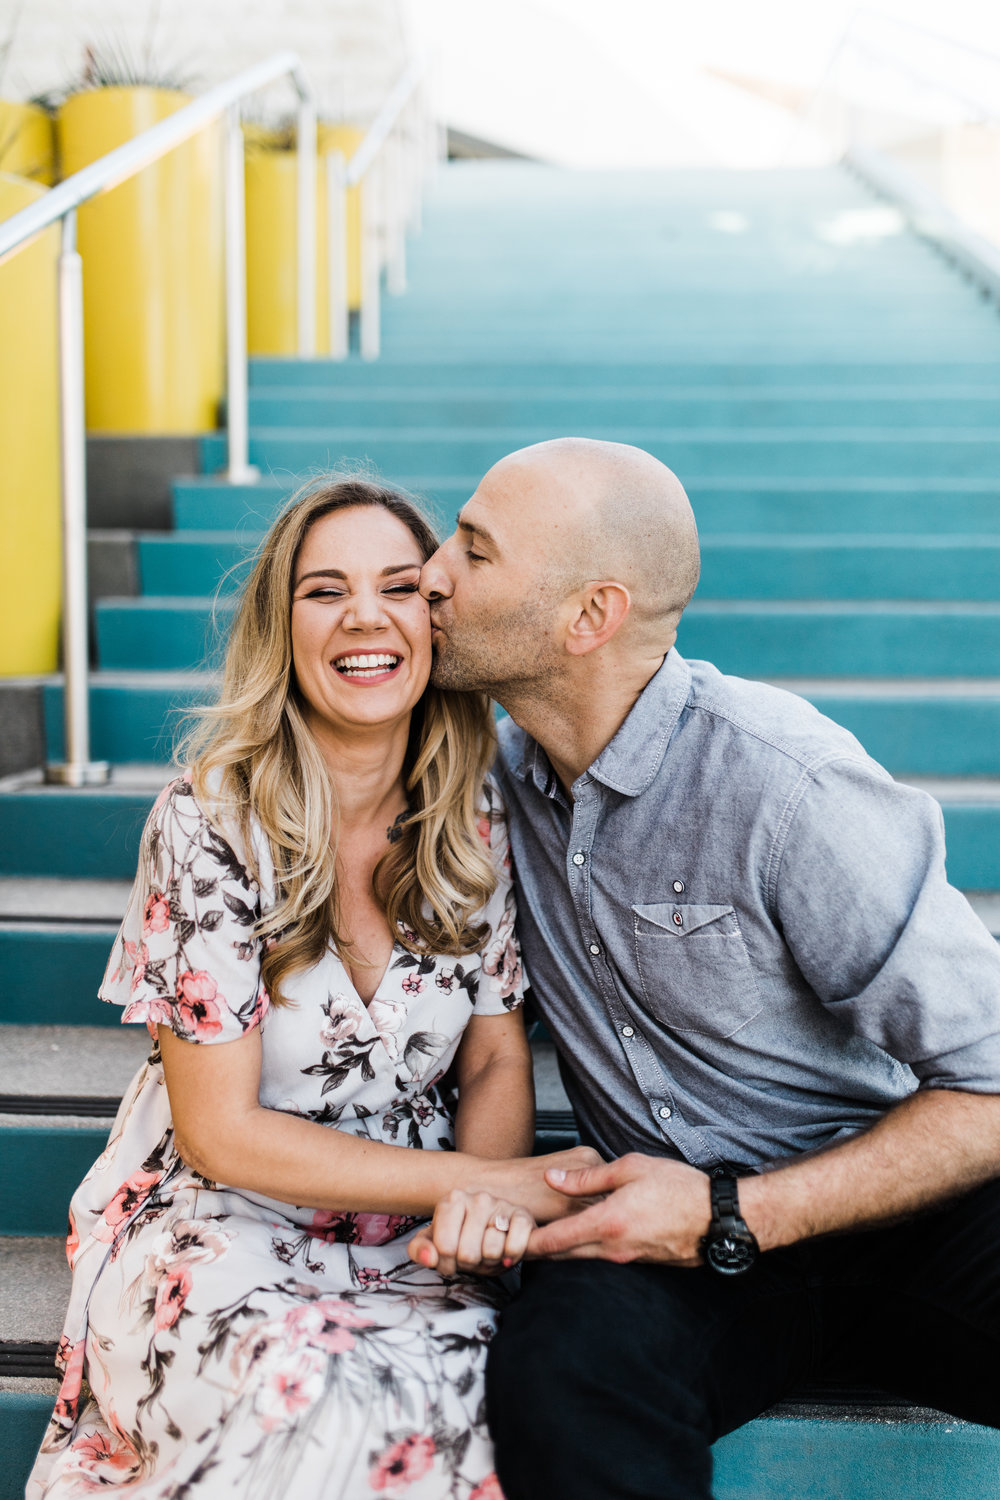 Koleta&Greg-Pacific-City-Huntington-Beach-Engagement-Photos-Clarisse-Rae-Southern-California-Wedding-Photographer_32